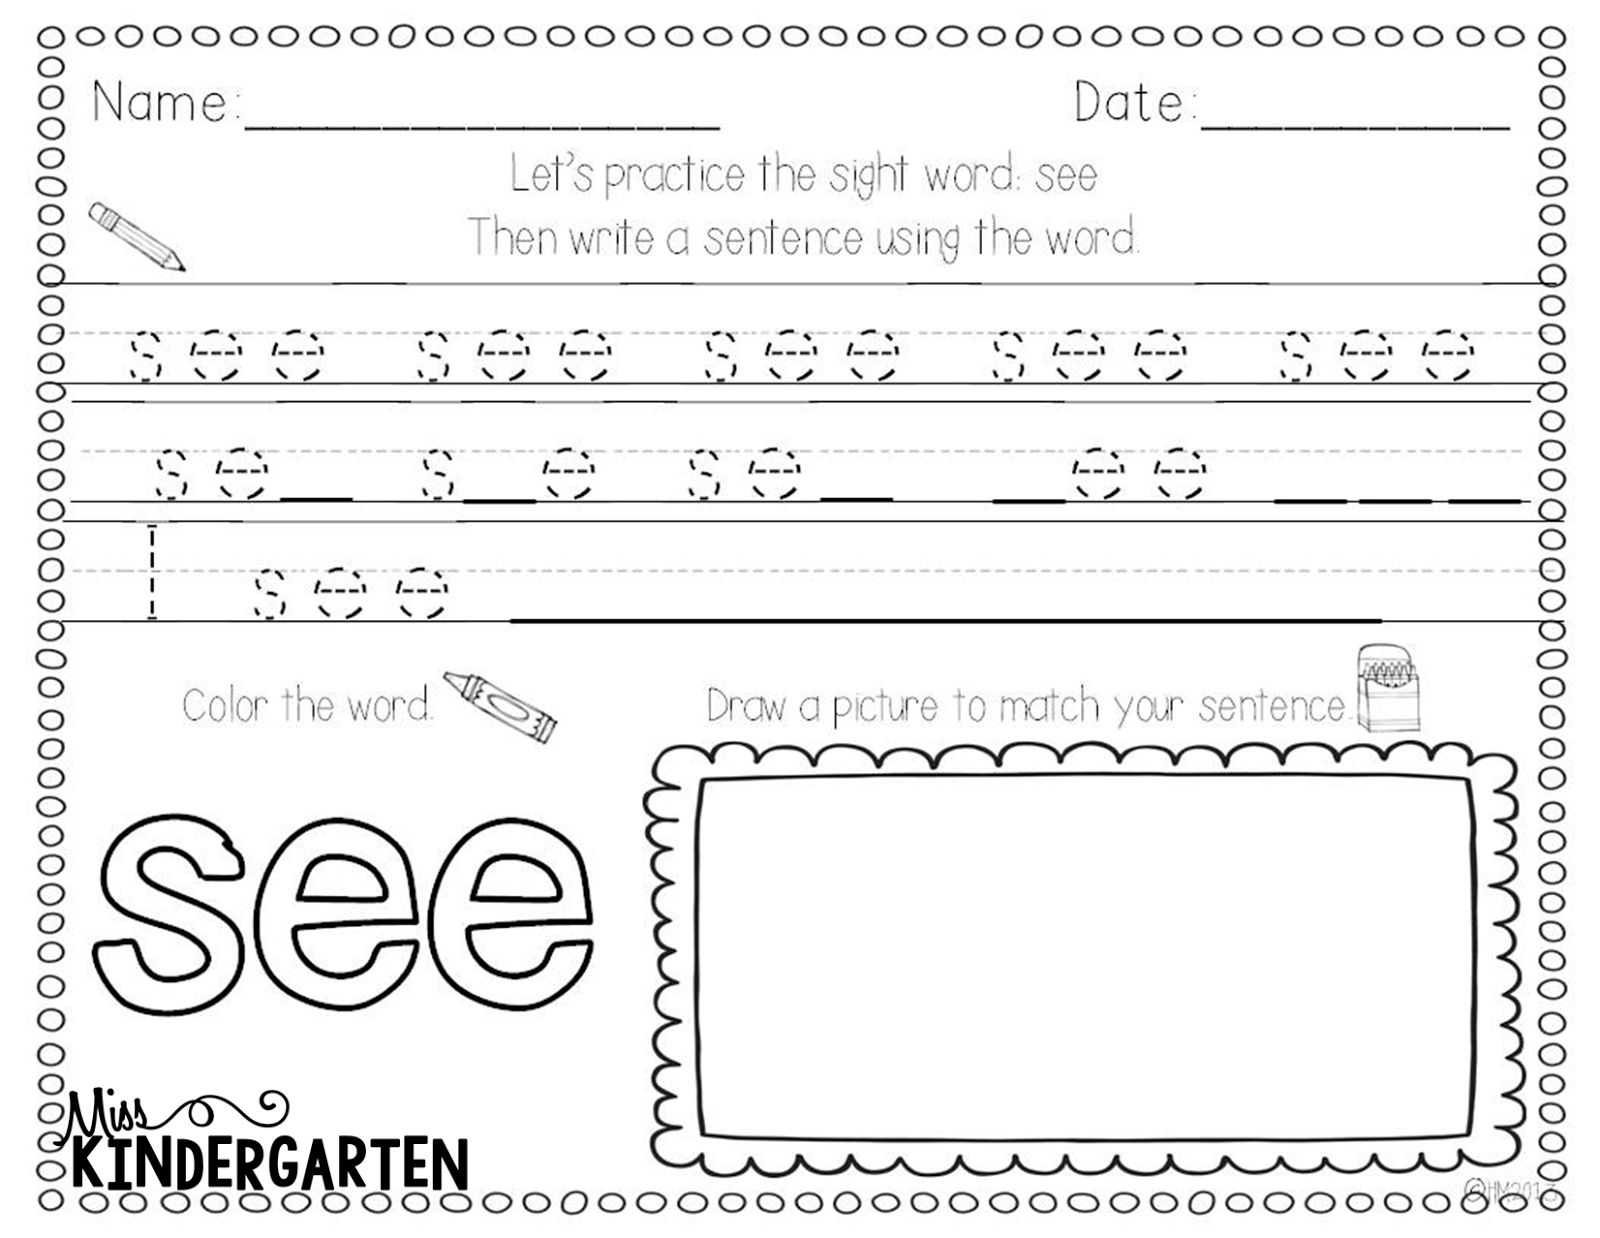 Word word sight kindergarten Practice! free for activities Sight